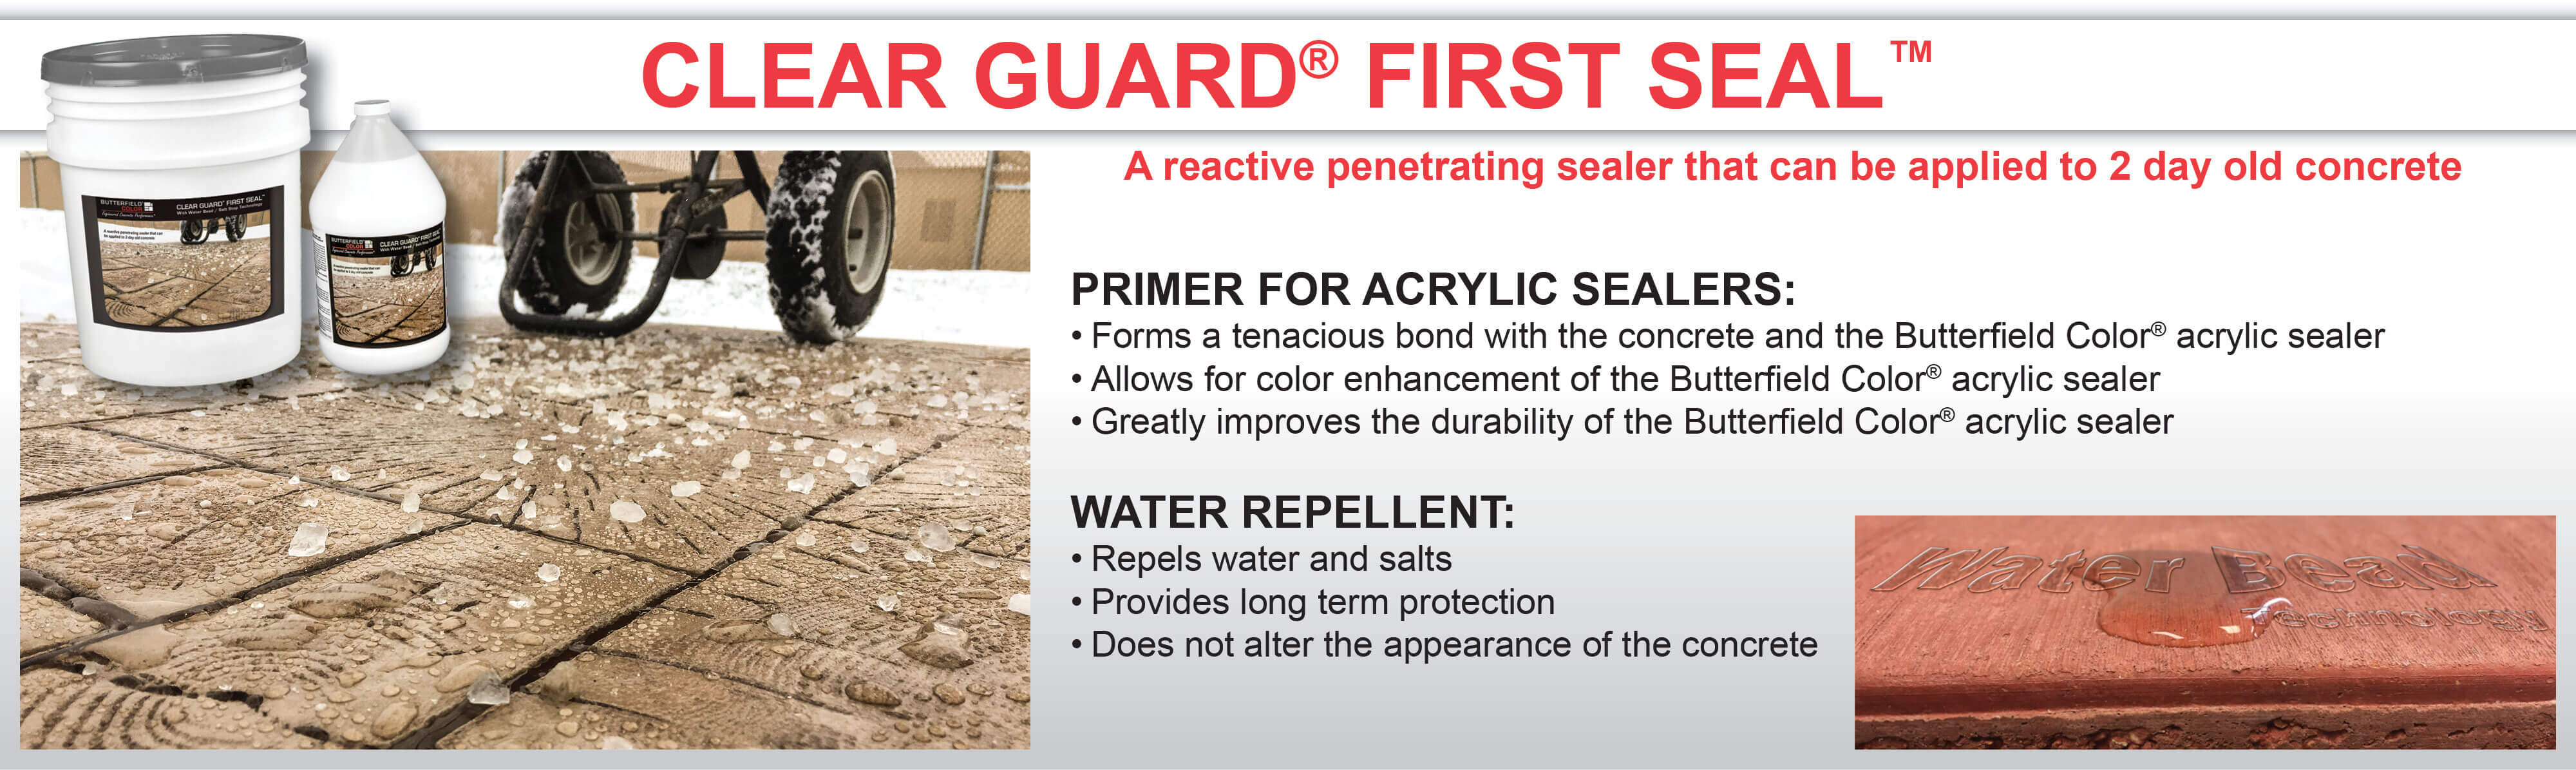 Clear Guard First Seal Home Slider